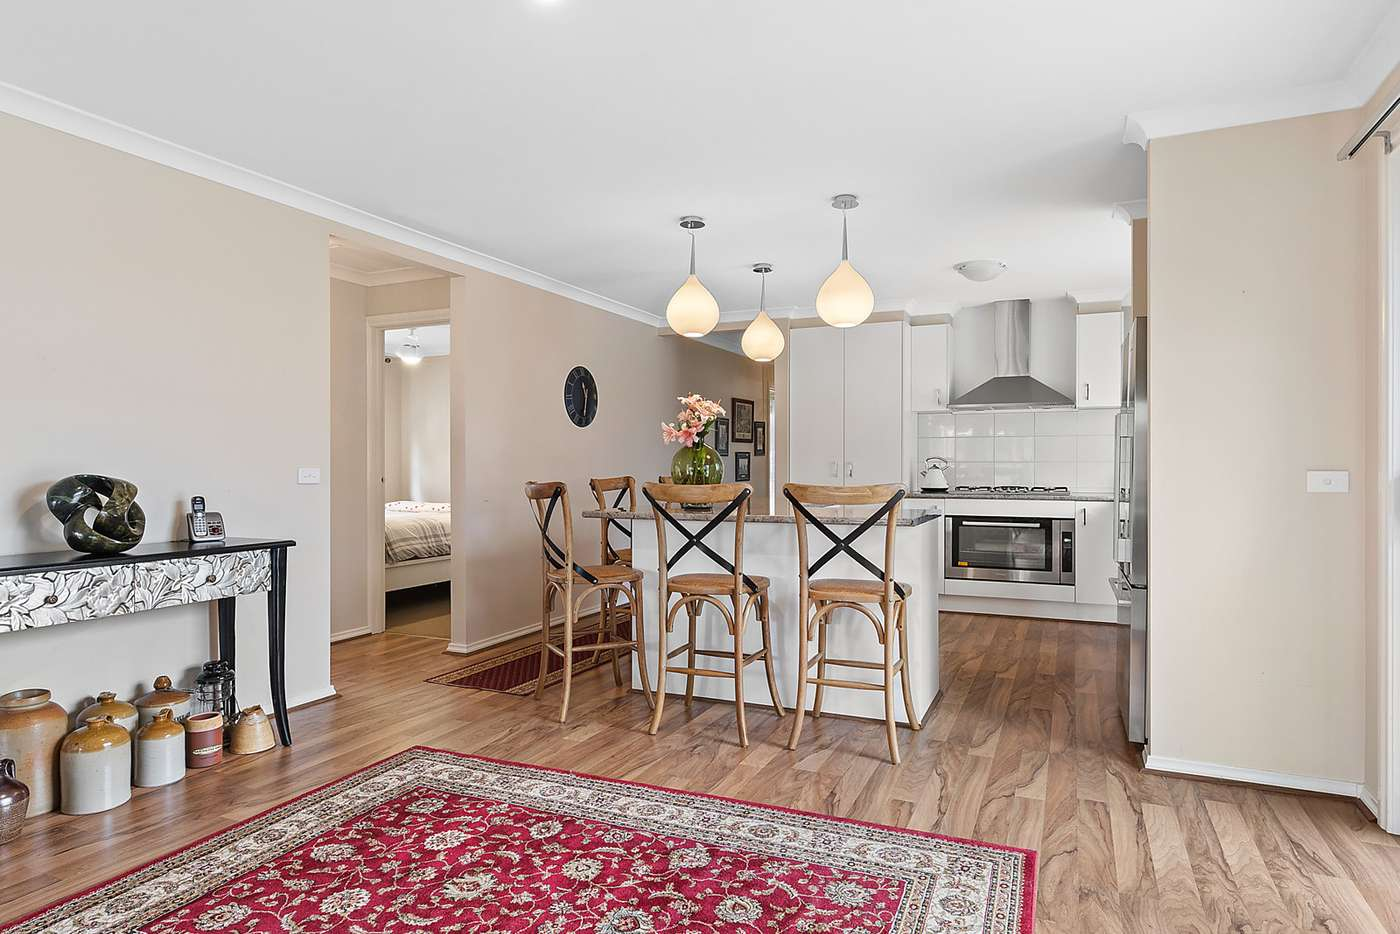 Fifth view of Homely house listing, 17 Jasmine Crescent, Ballan VIC 3342